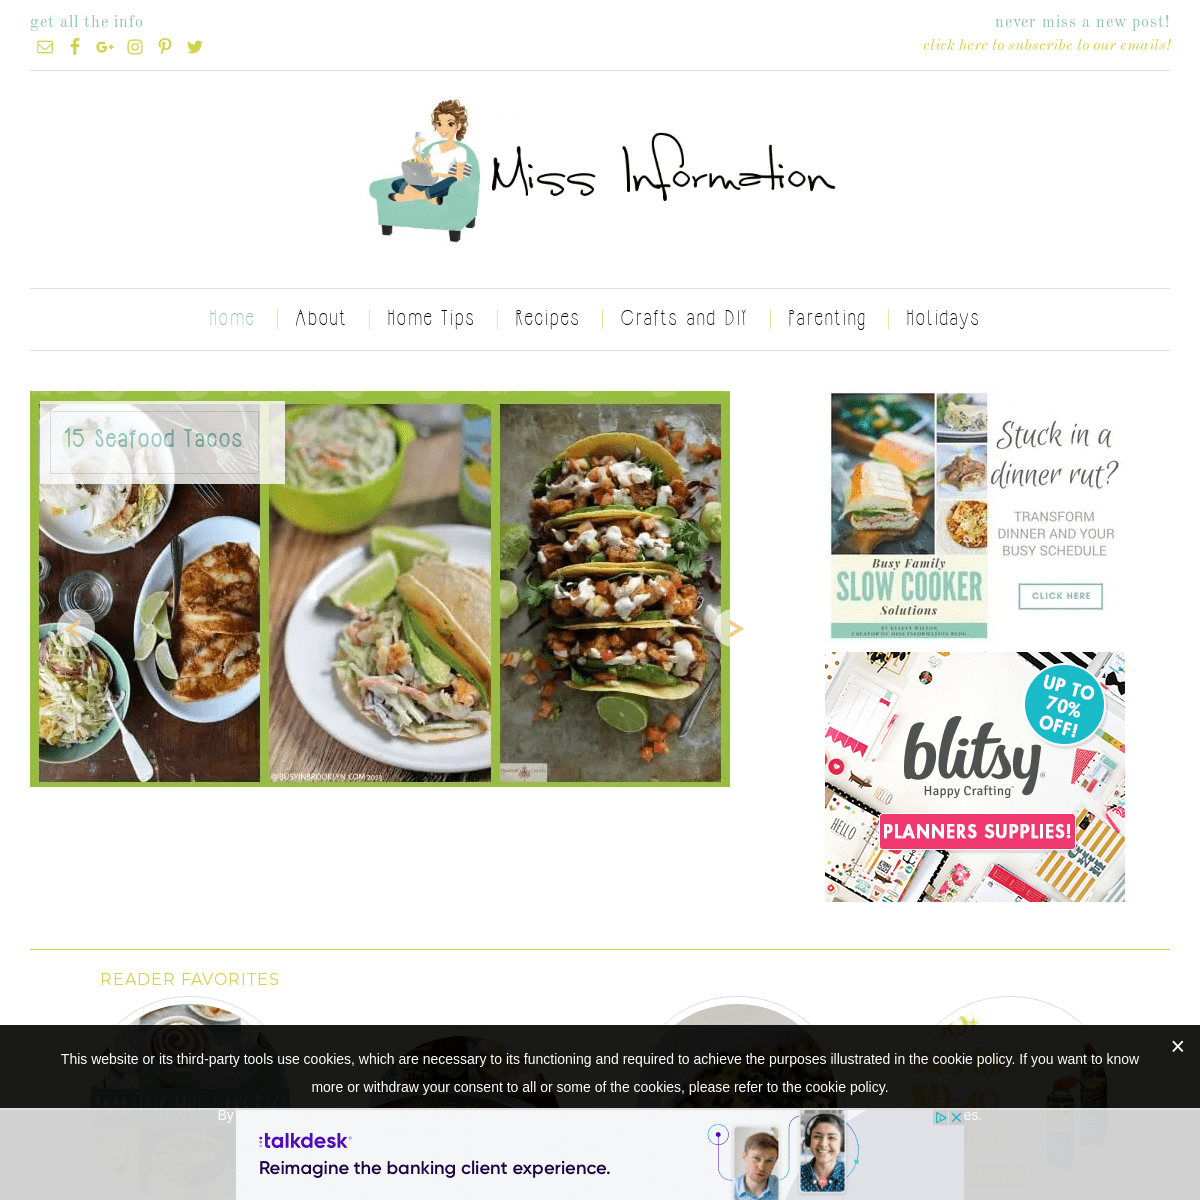 Miss Information - Miss Information is a lifestyle blog making your life easier with easy recipes, home tips for cleaning and or